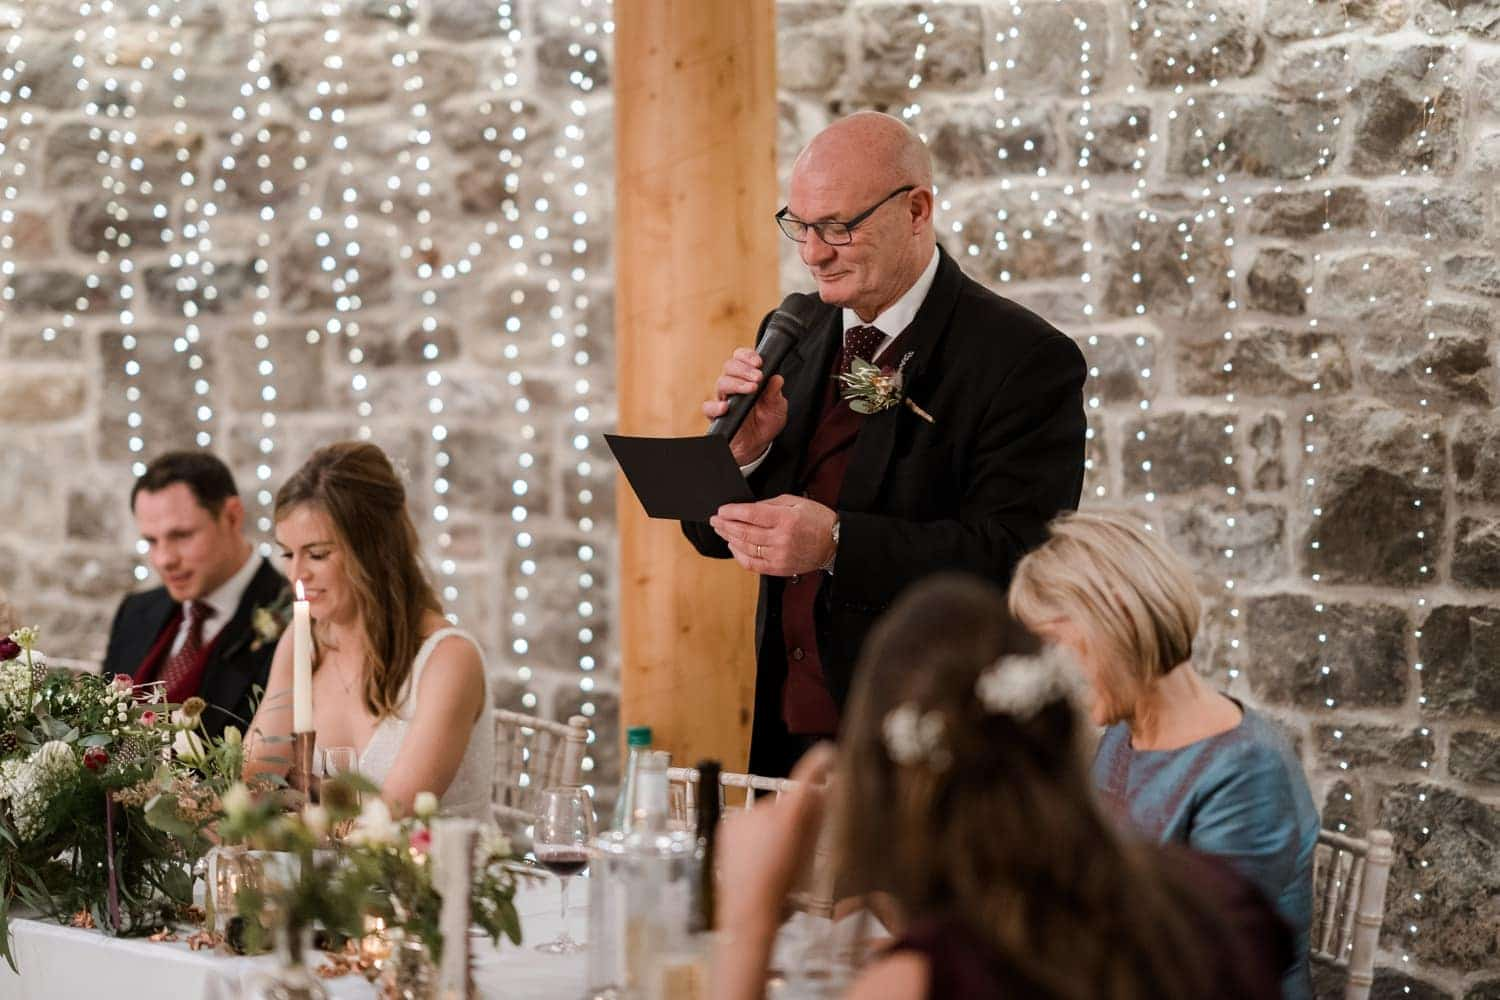 Wedding day speeches at St Tewdrics House in Monmouthshire